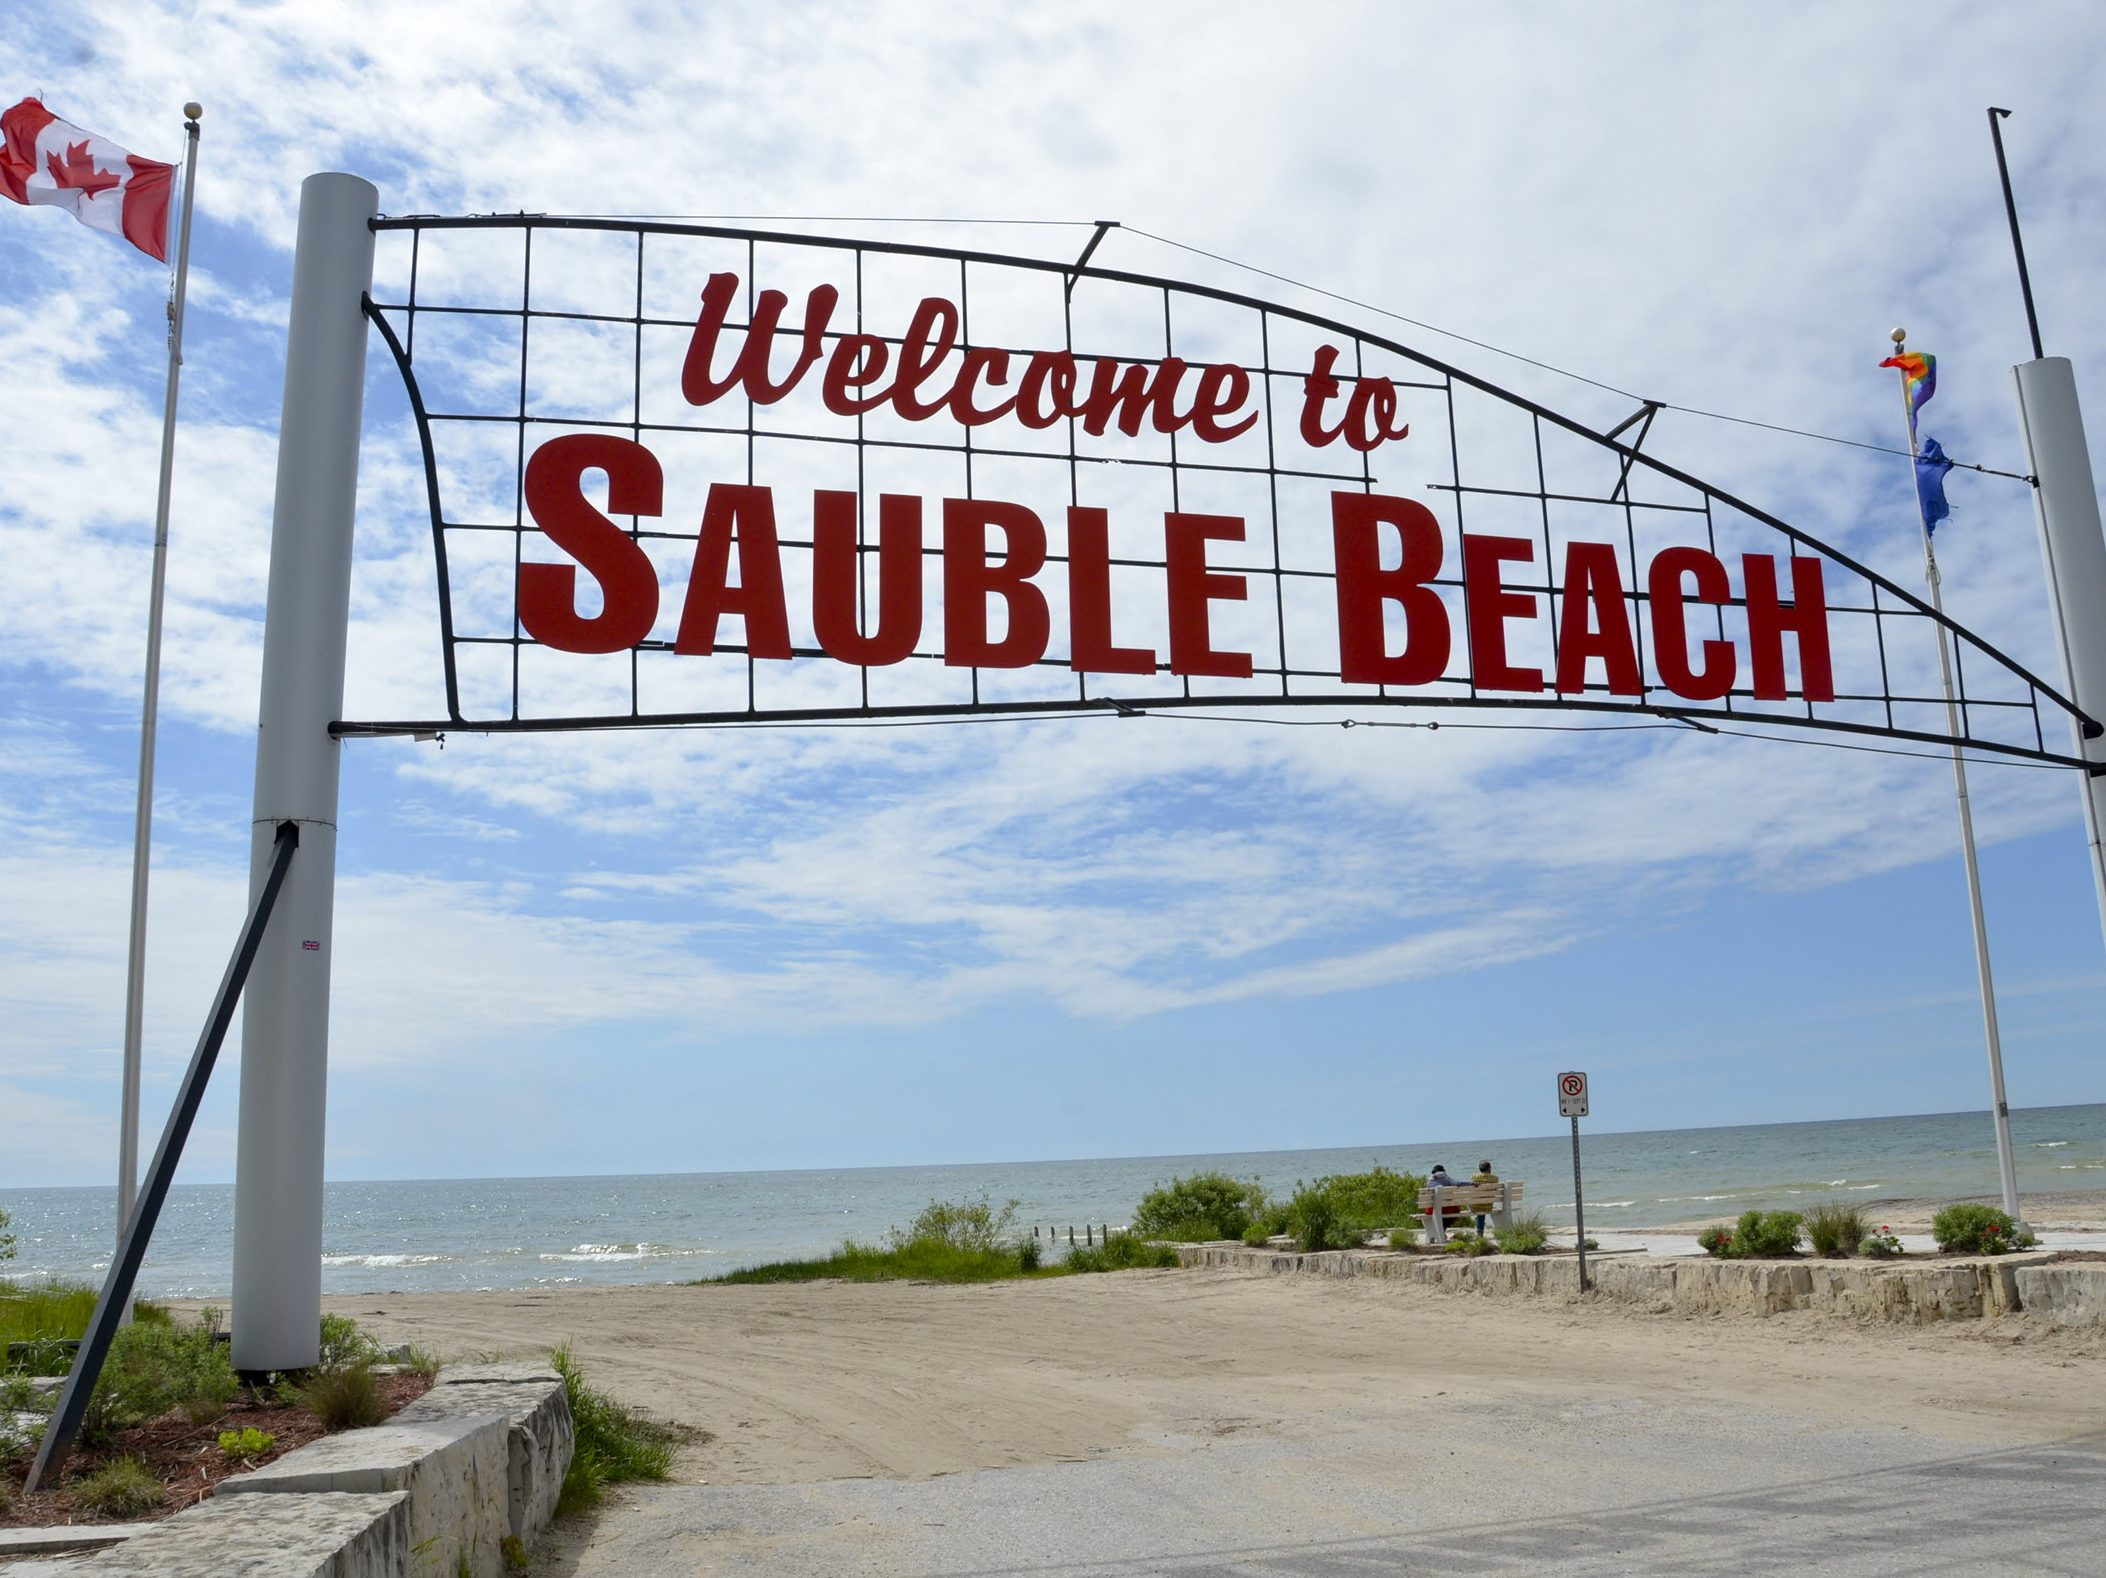 Visit Sauble Beach Ontario. Official Website for Sauble Beach.